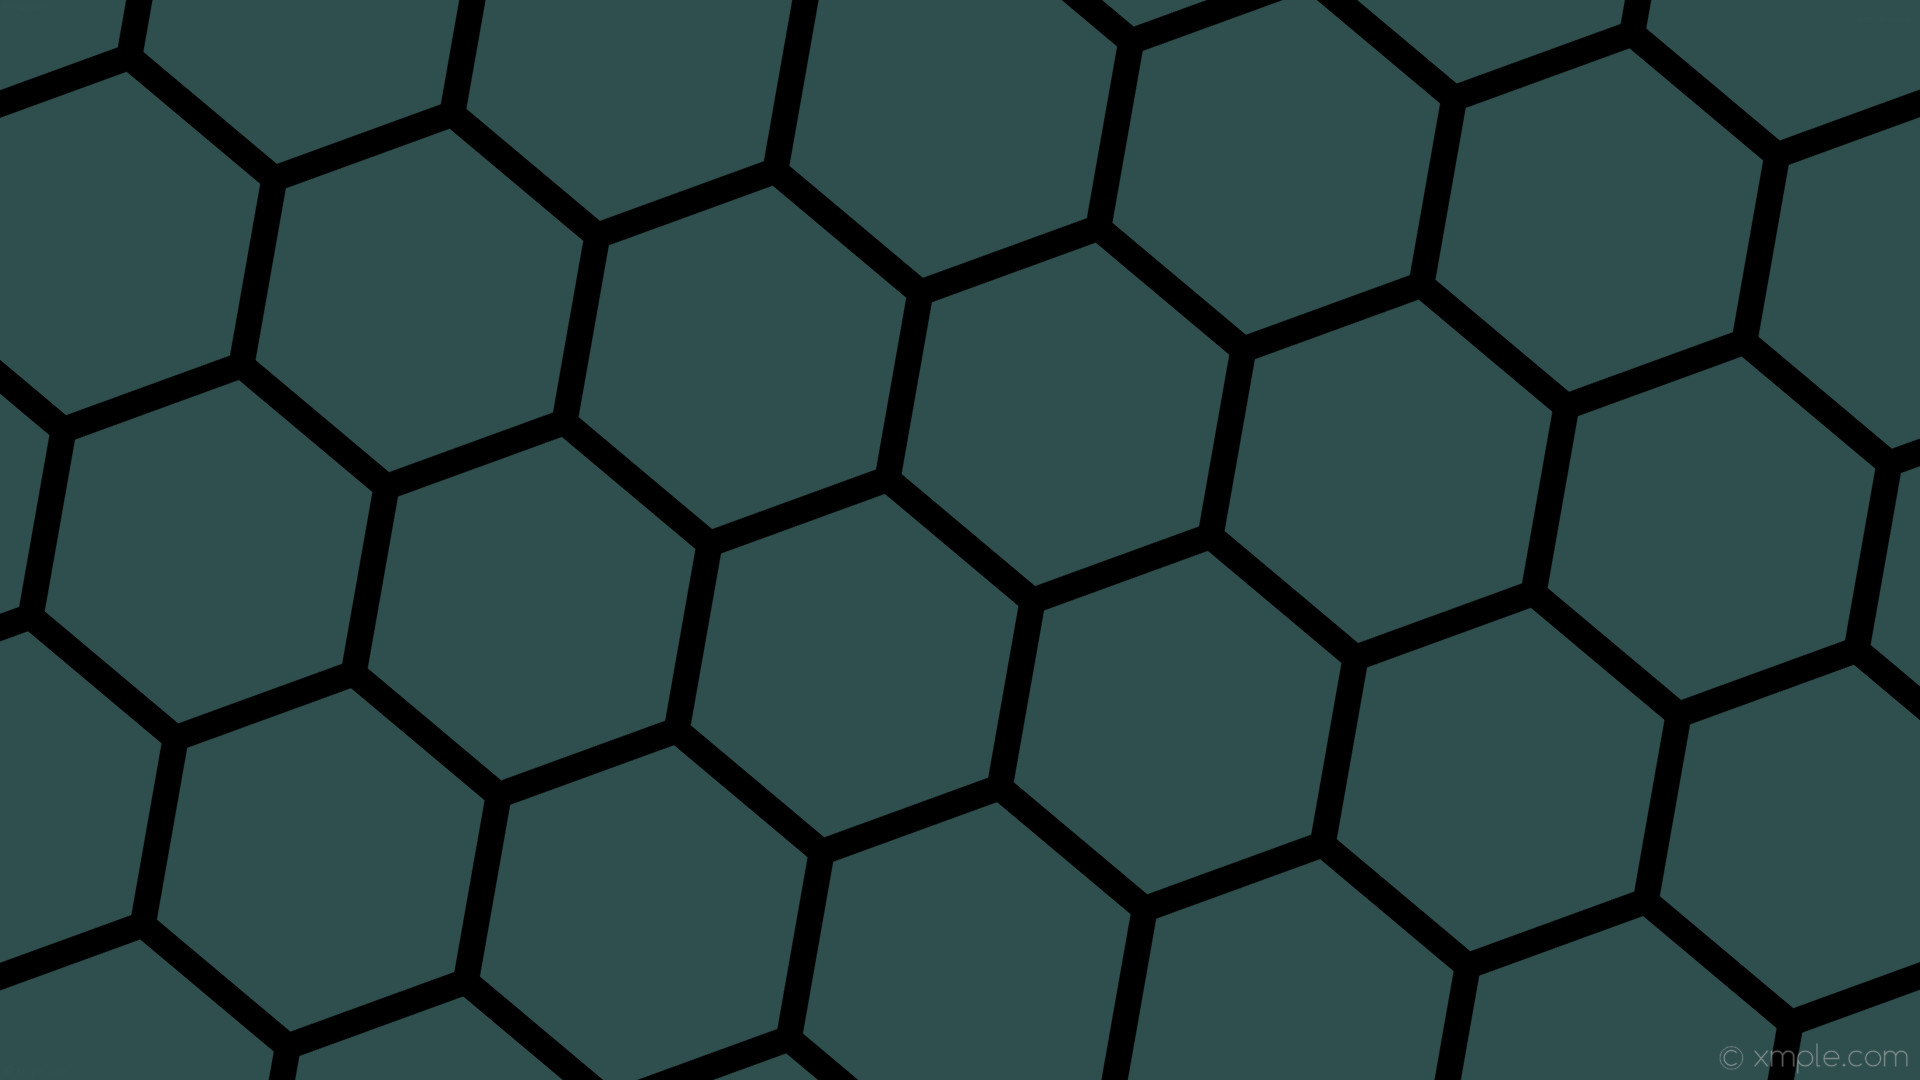 wallpaper beehive grey honeycomb black hexagon dark slate gray #2f4f4f  #000000 diagonal 50°